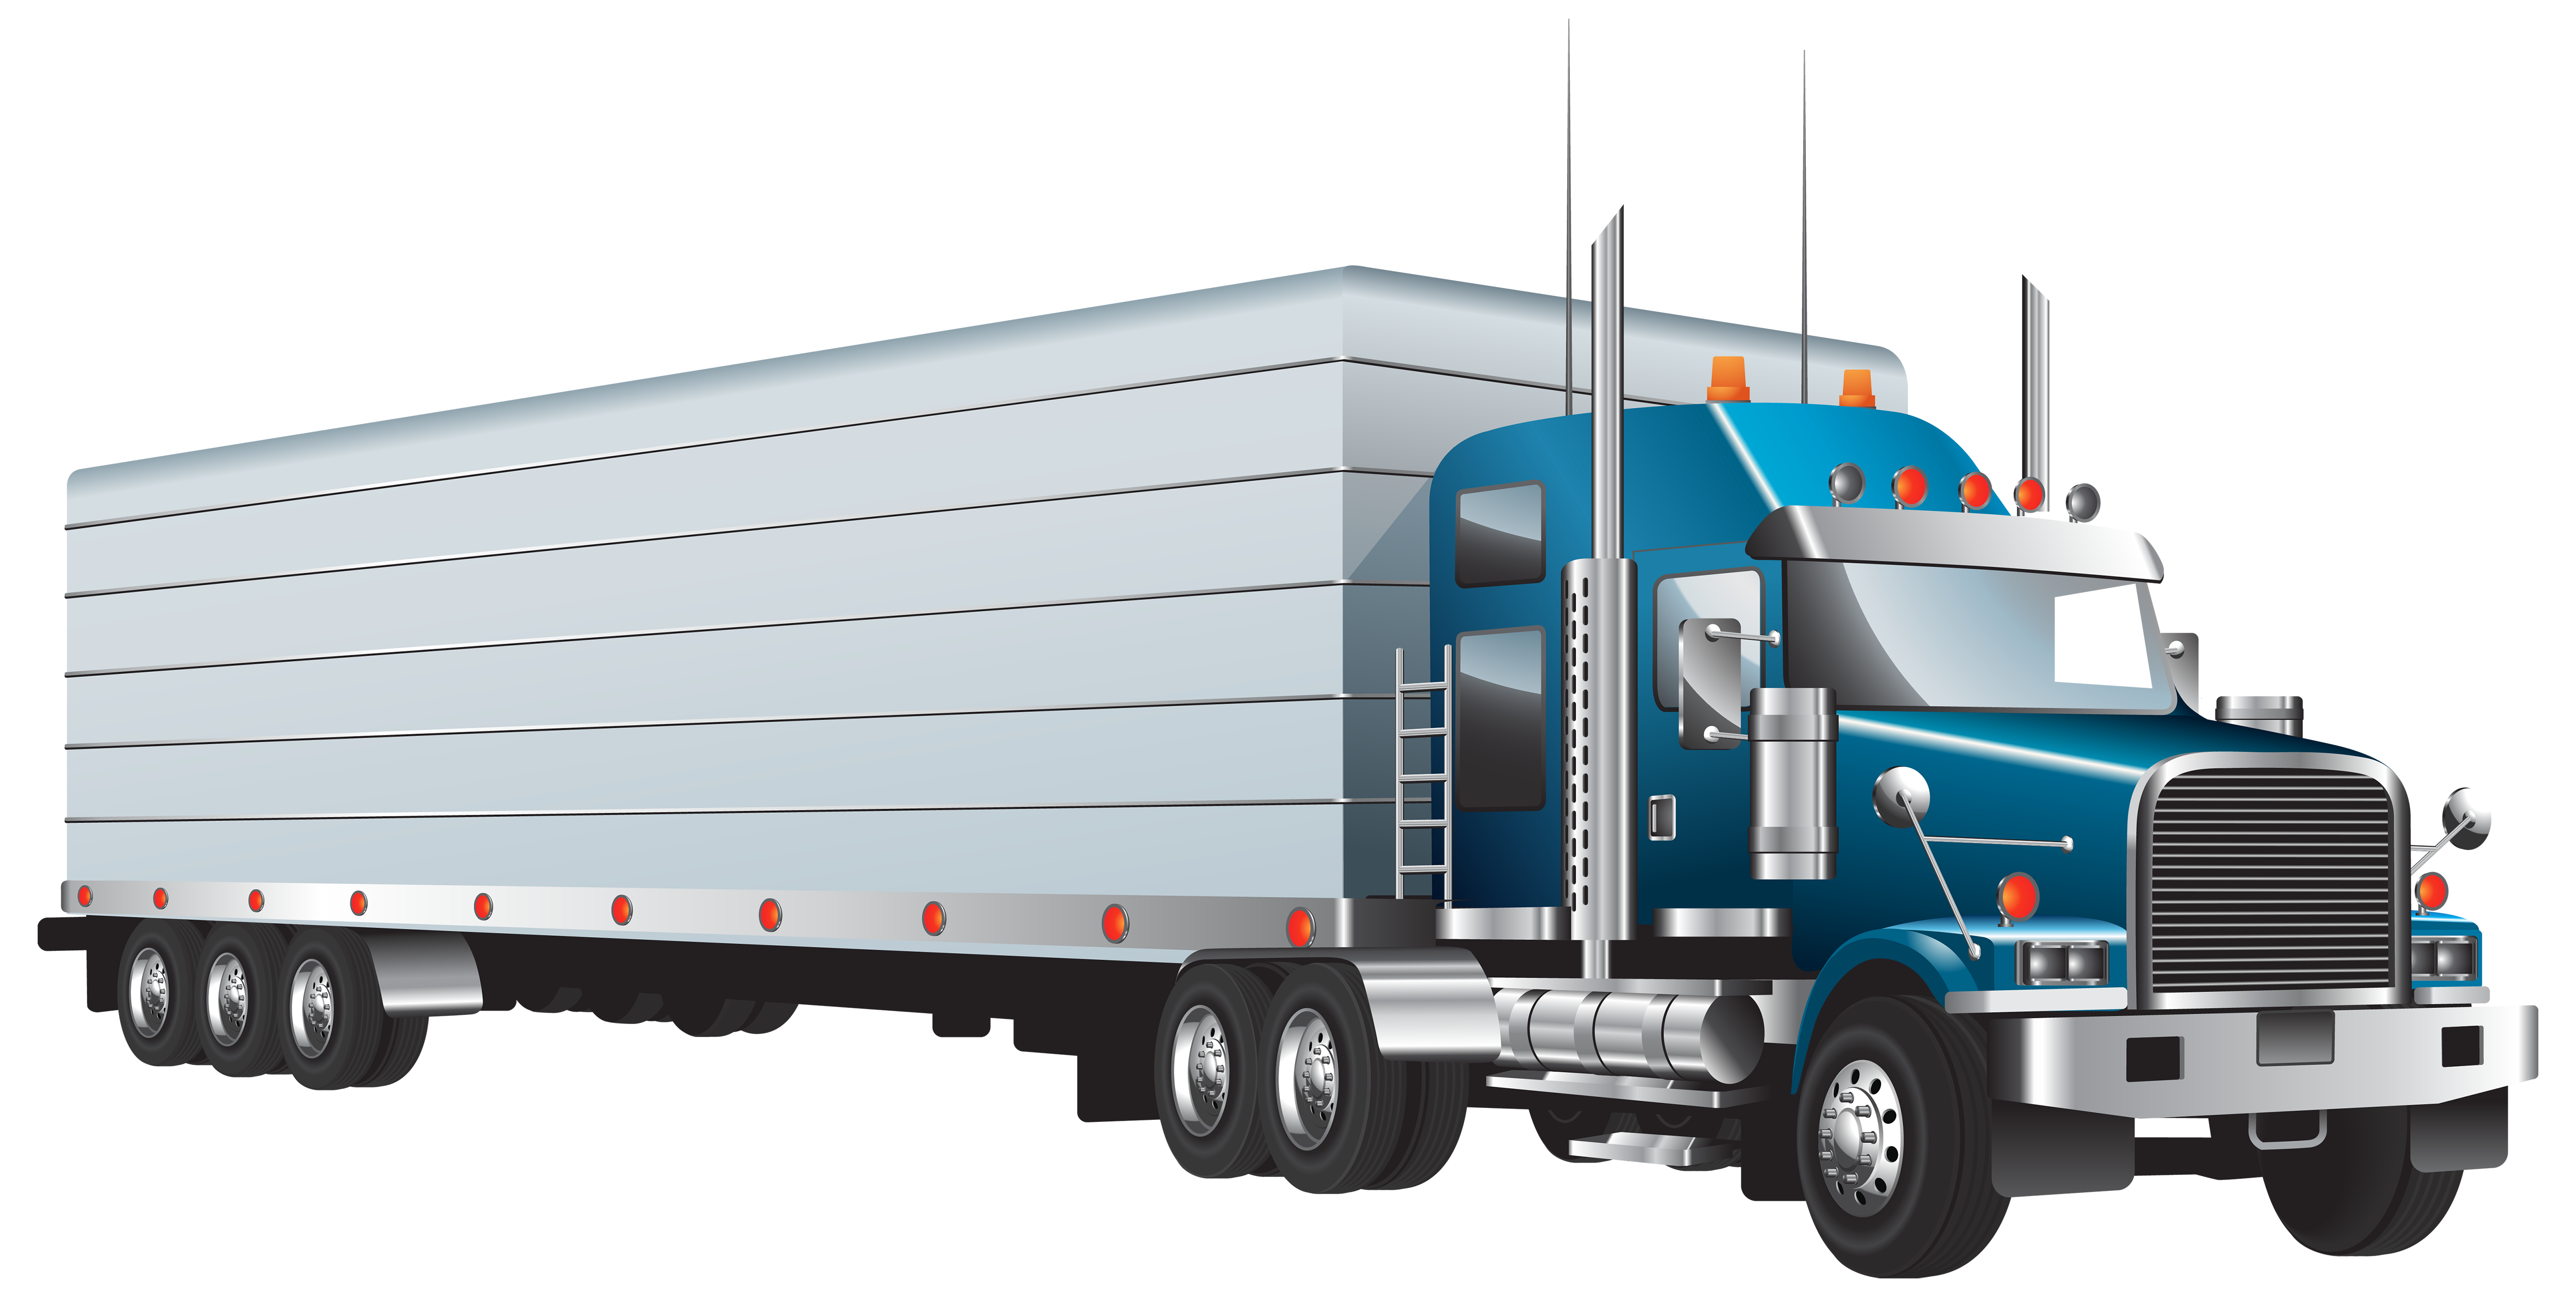 Png best web. Tree clipart truck